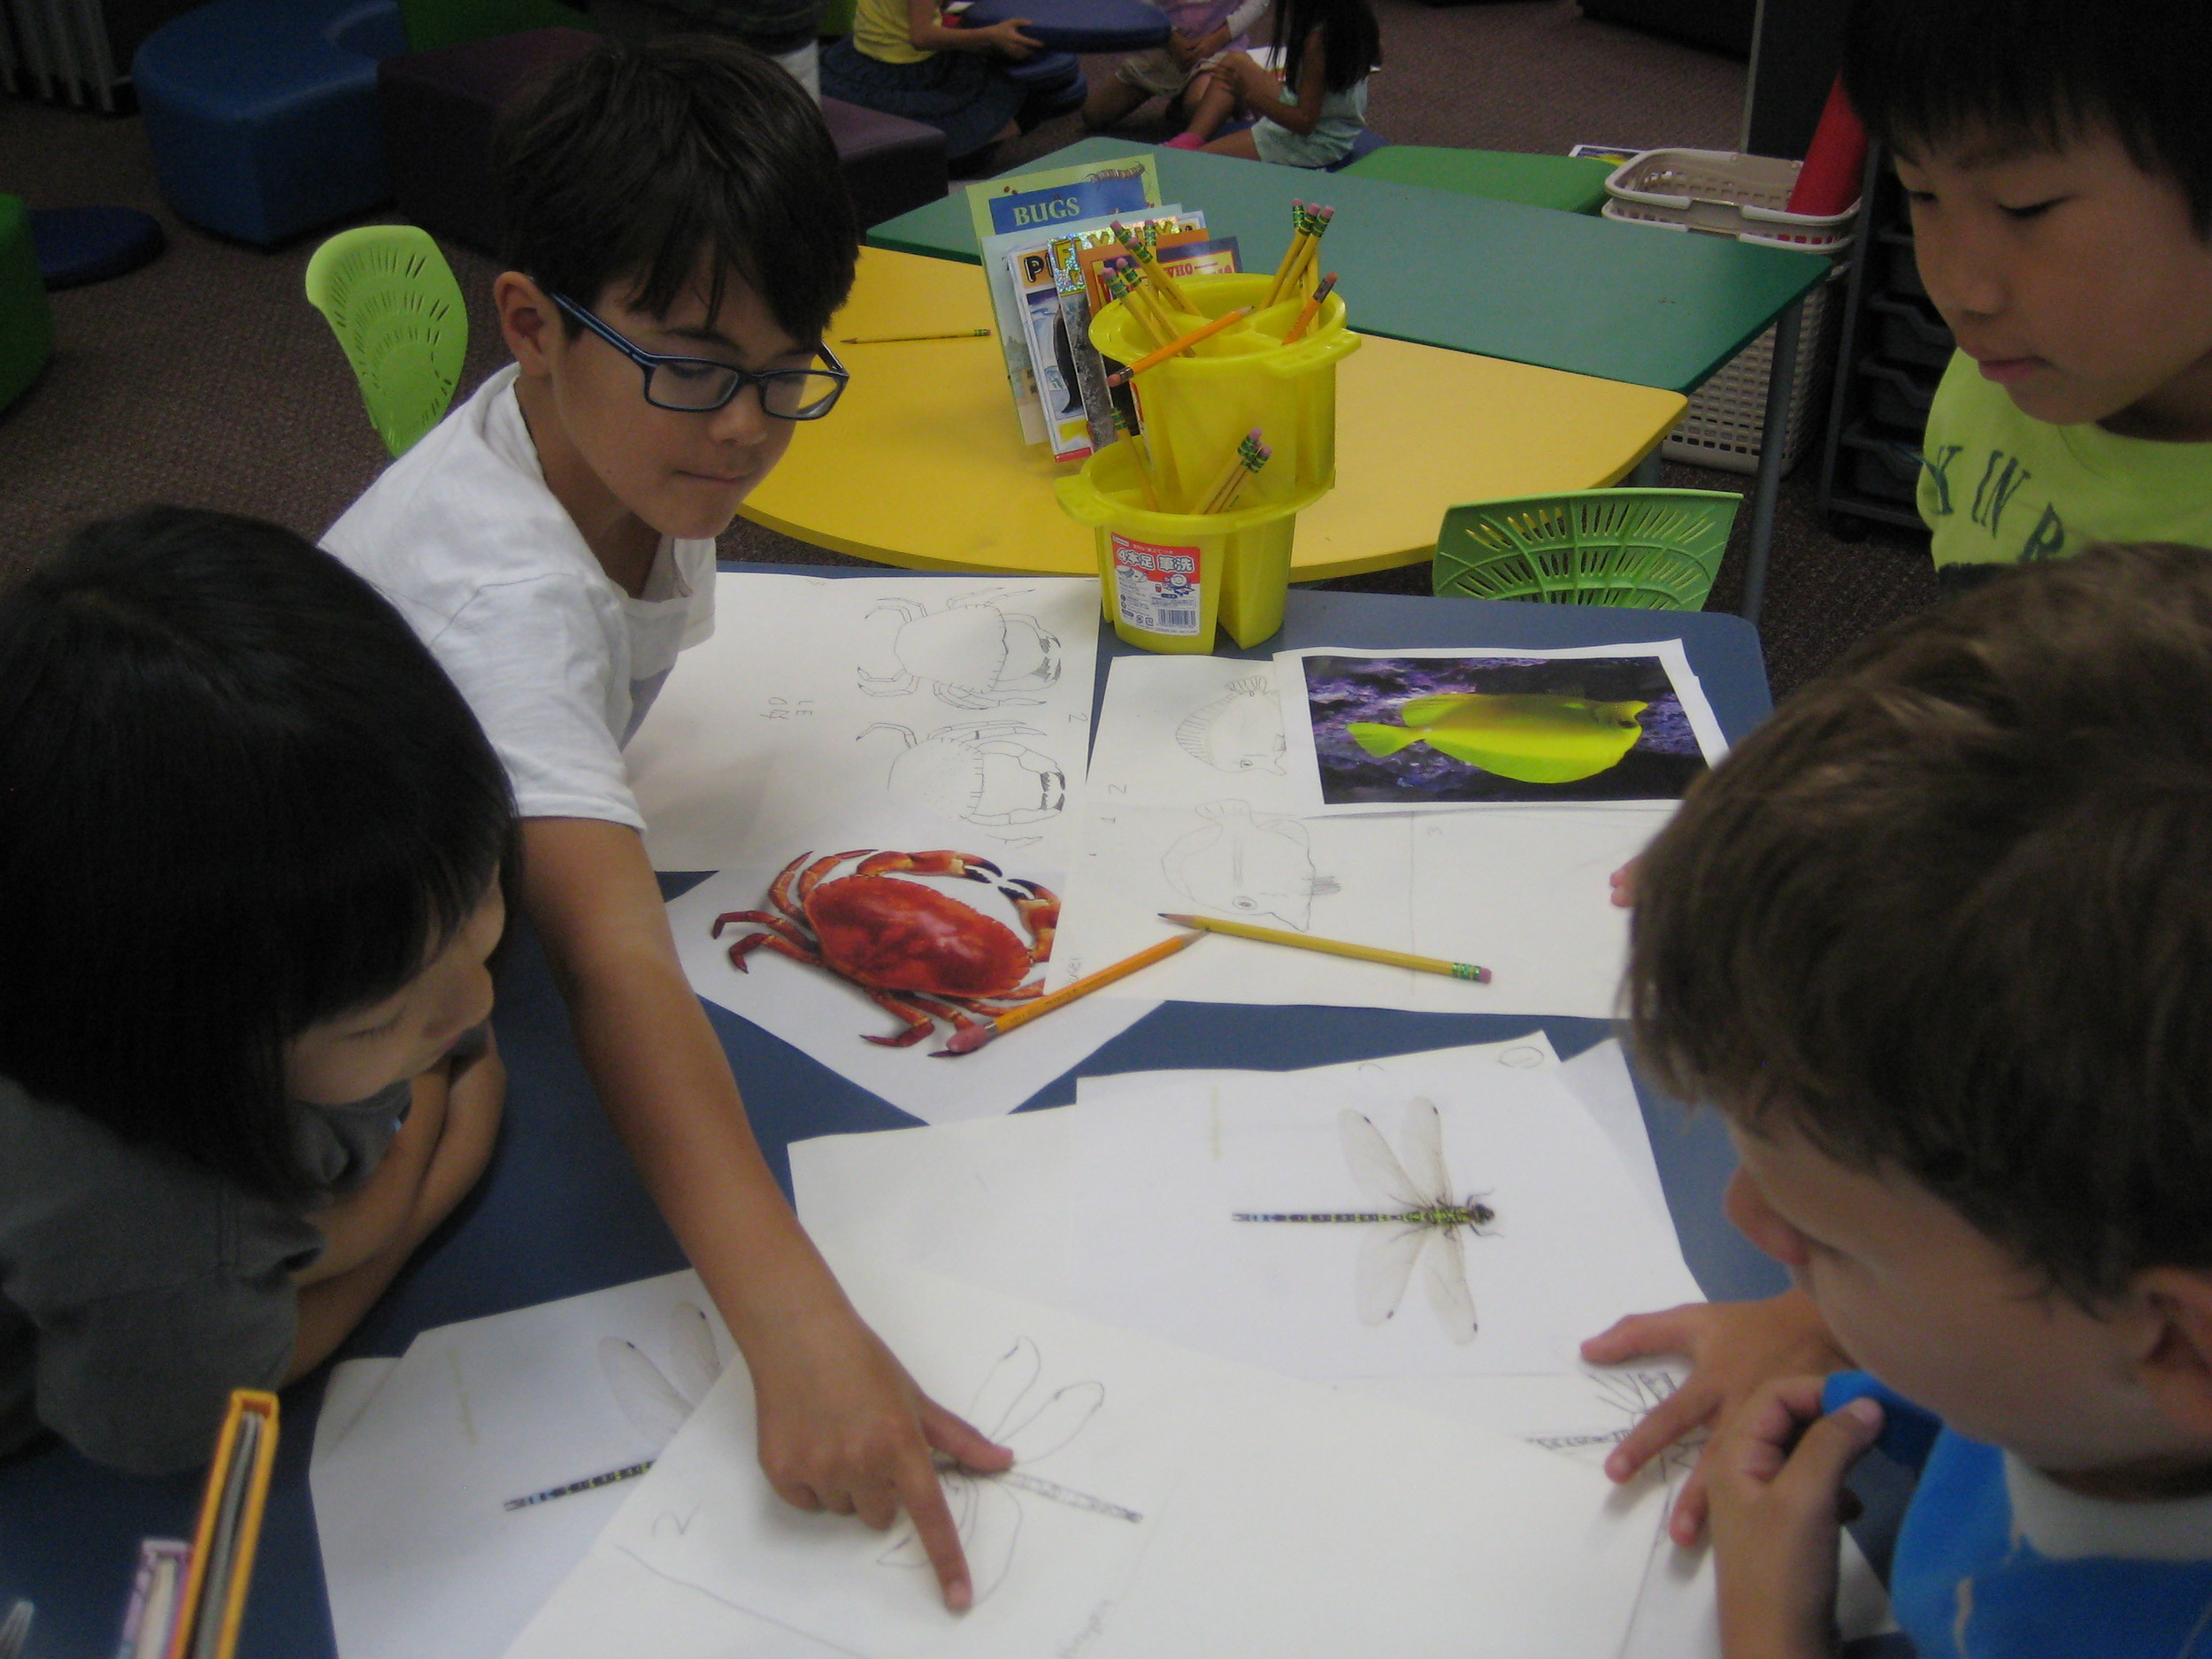 Children worked in groups to give initial feedback